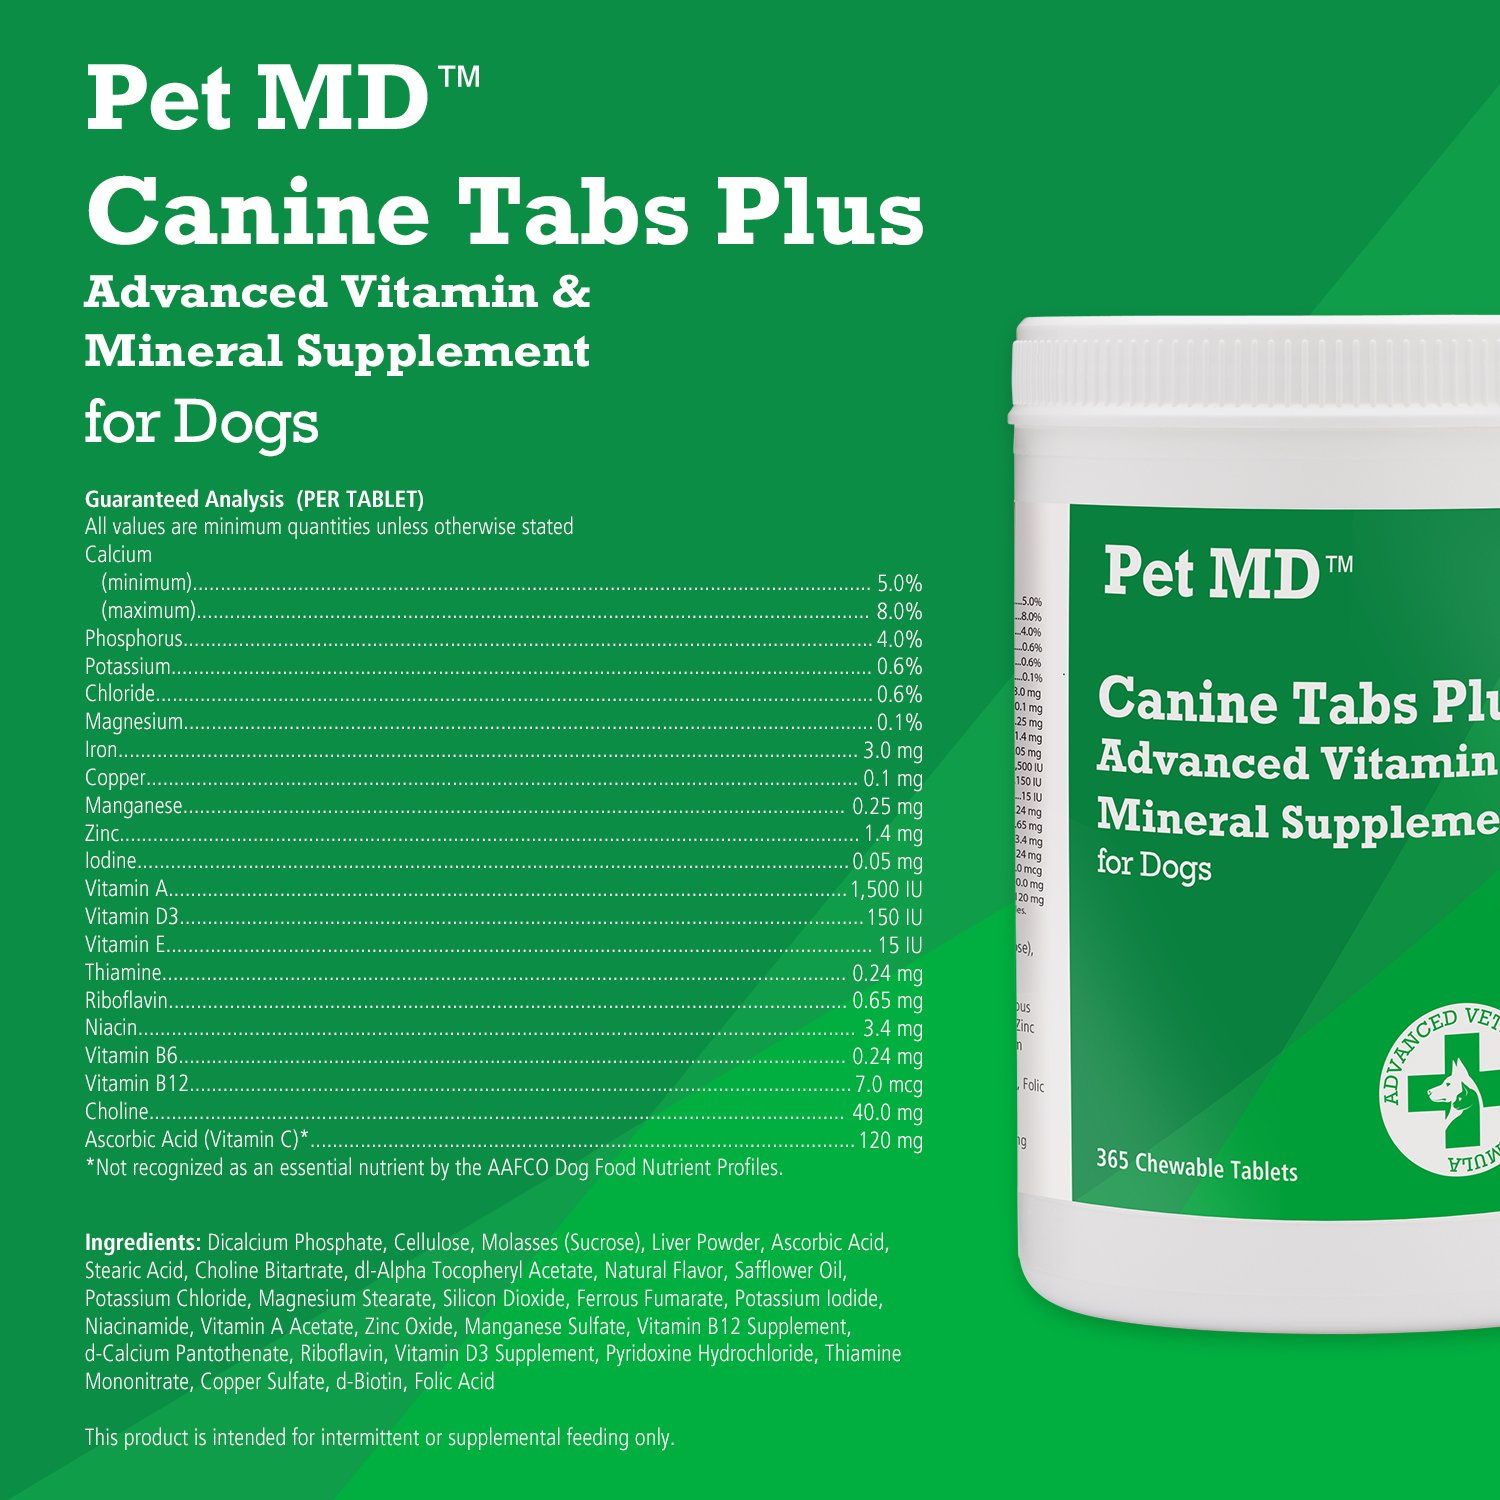 Pet MD - Canine Tabs Plus 365 Count - Advanced Multivitamins for Dogs - Natural Daily Vitamin and Mineral Nutritional Supplement - Liver Flavored Chewable Tablets by Pet MD (Image #3)